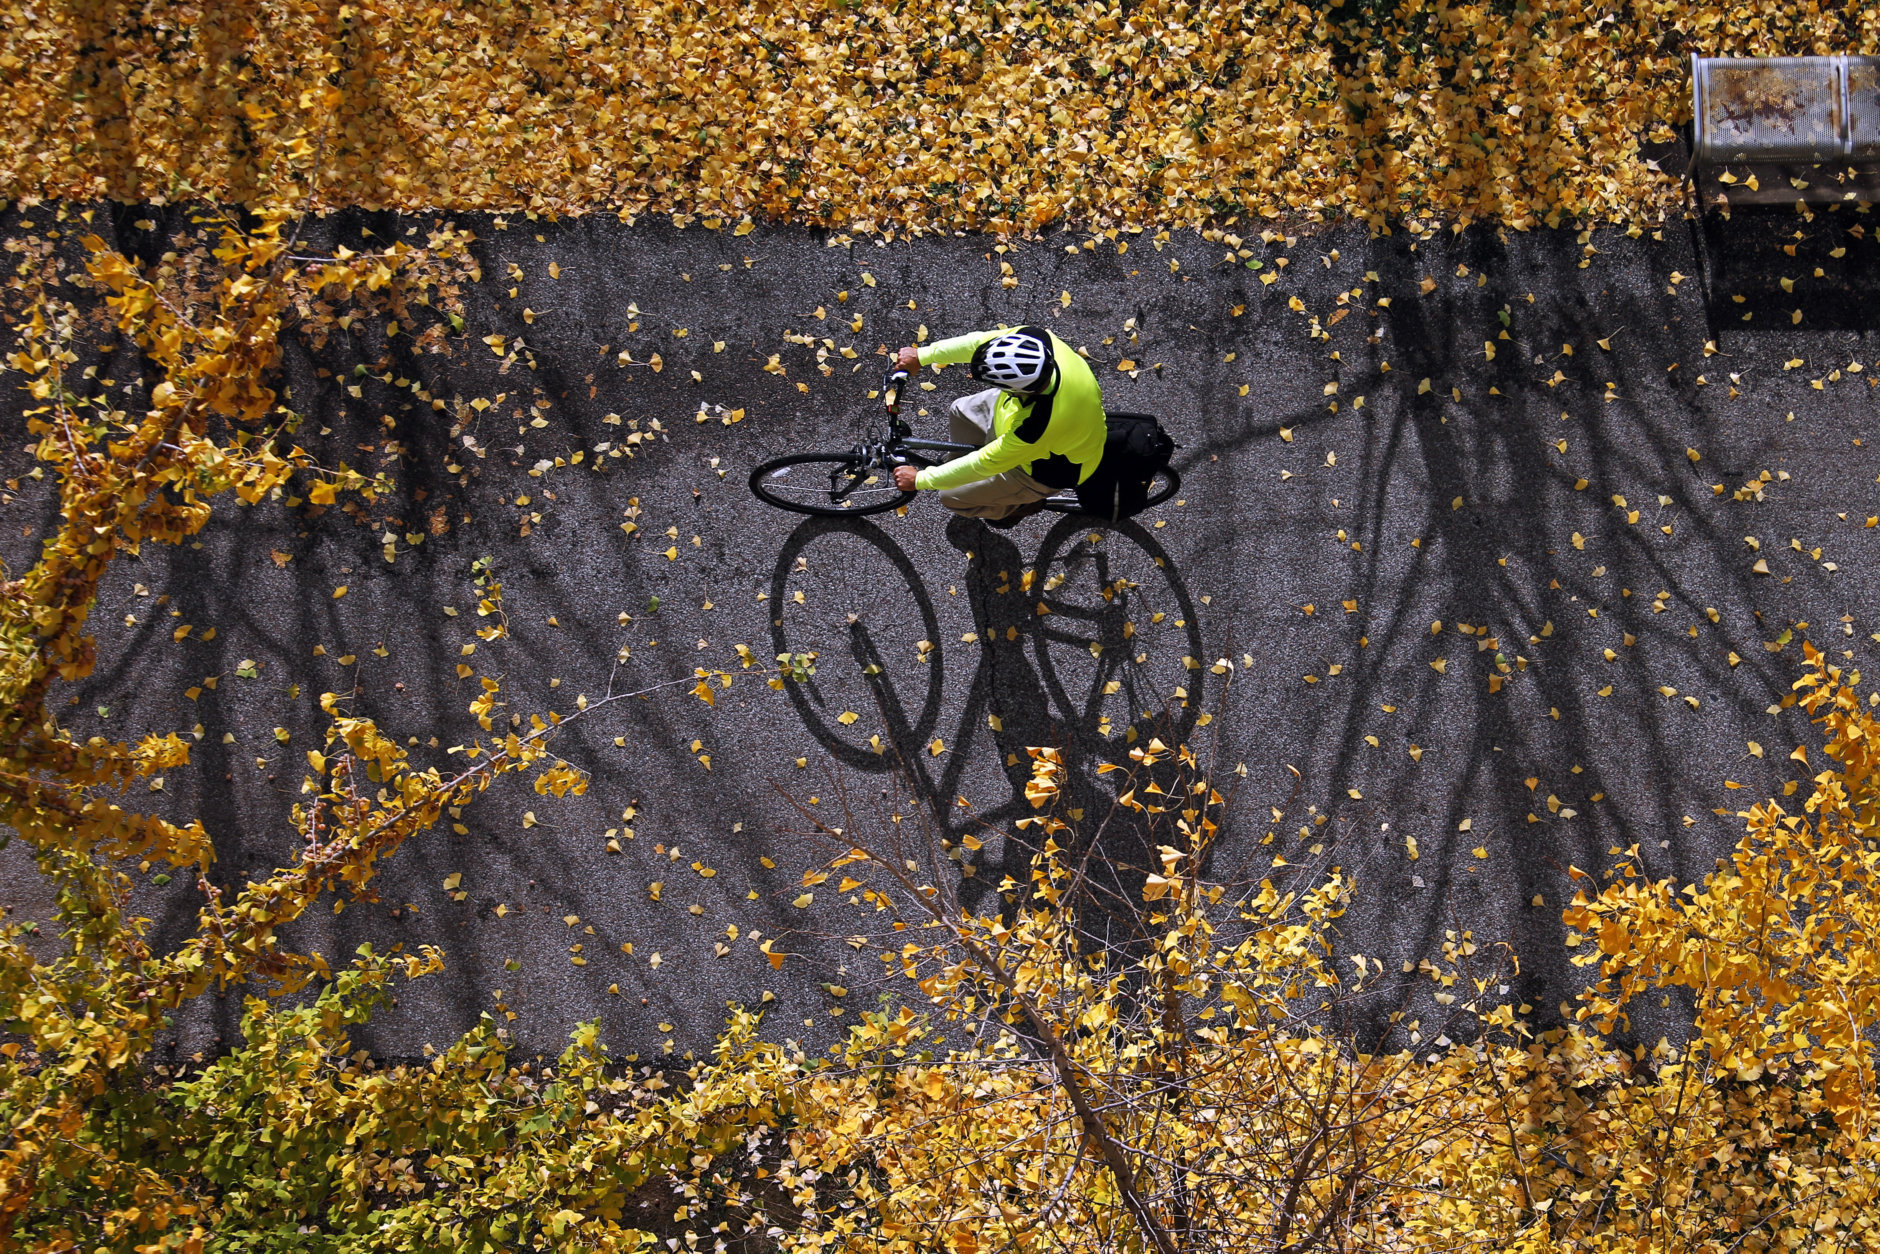 A bicyclist rides on the beginning of the 150.5 mile Great Allegheny Passage that runs between downtown Pittsburgh and Cumberland, Md., Thursday, Nov. 12, 2015. Combined with the C@O Canal Towpath, that begins in Cumberland, Md., they are a 334.5 mile ride between Pittsburgh and Georgetown in Washington D.C. (AP Photo/Gene J. Puskar)